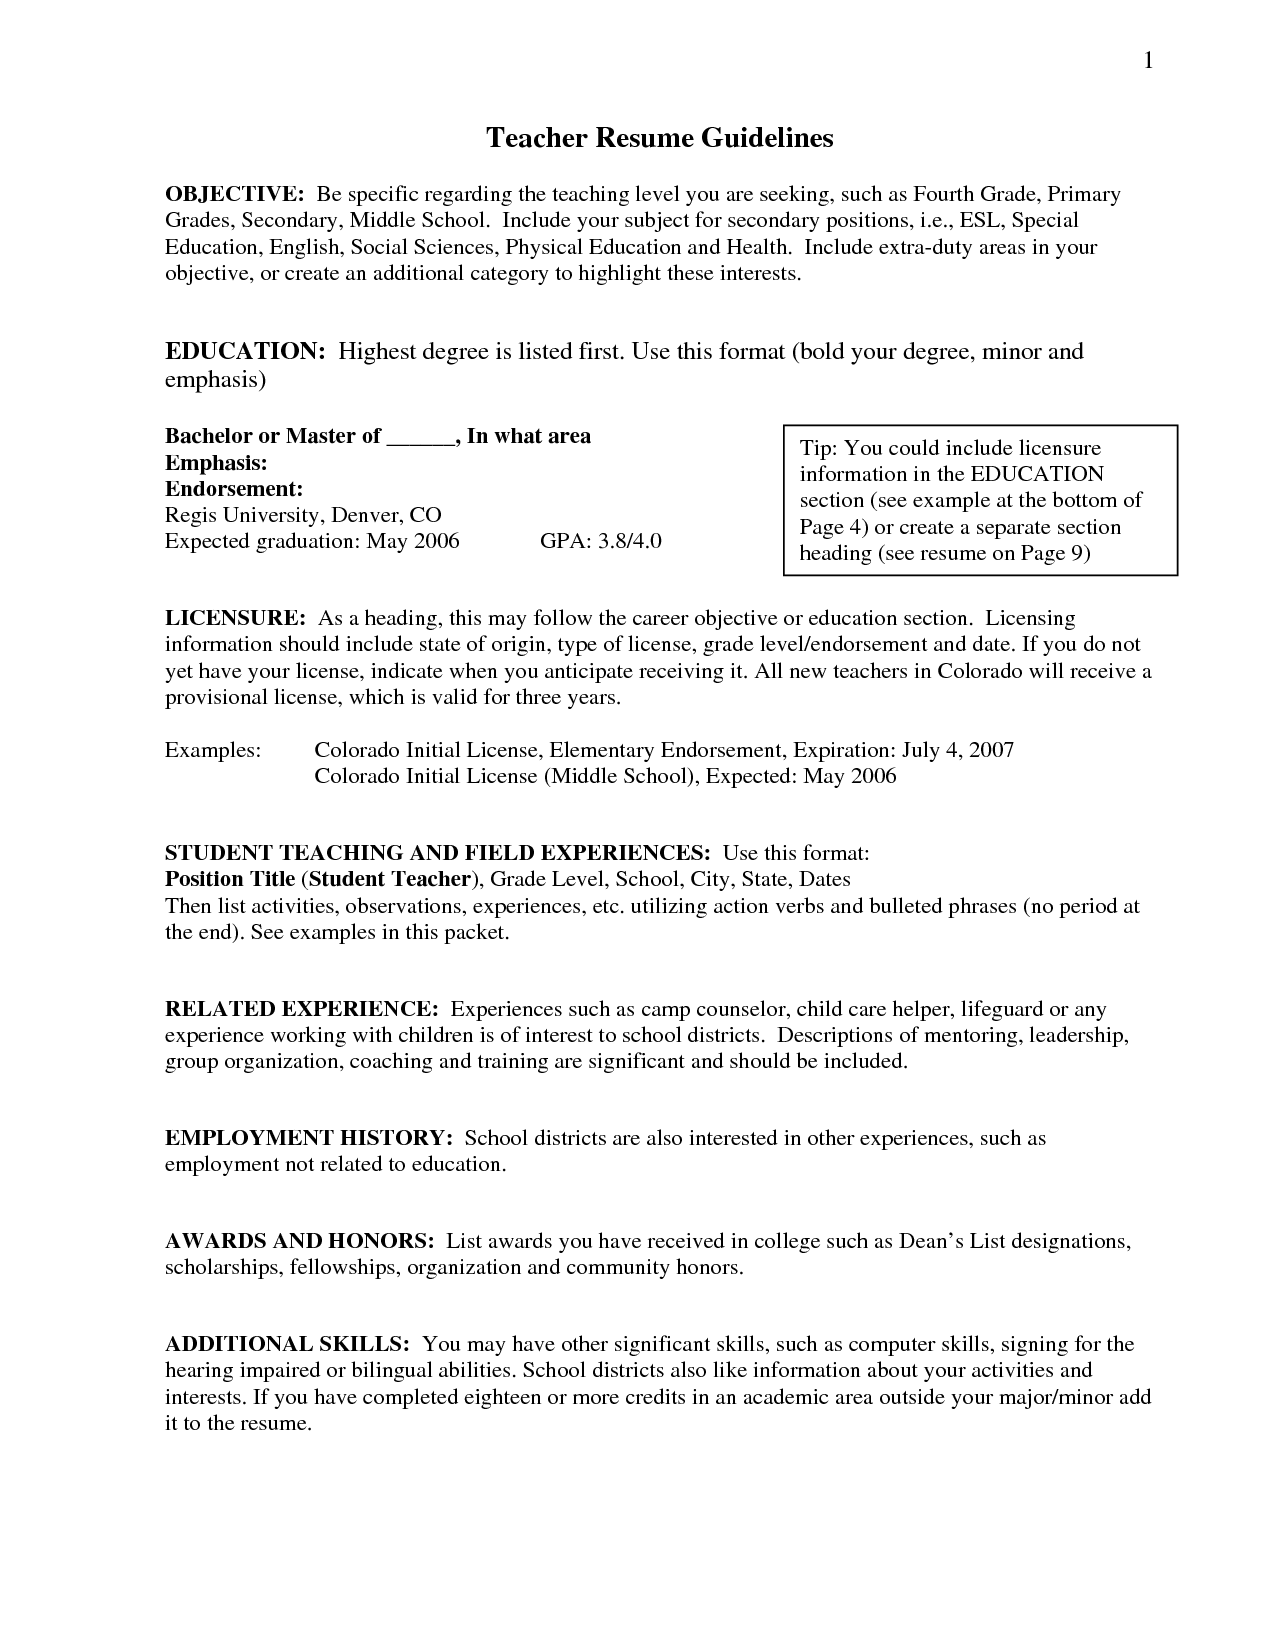 Special Education Teacher Resume And Cover Letter. The Sample Below Is For  A Special Education Teaching Resume. This Resume Was Written By A  ResumeMyCareer ...  Student Teaching On Resume